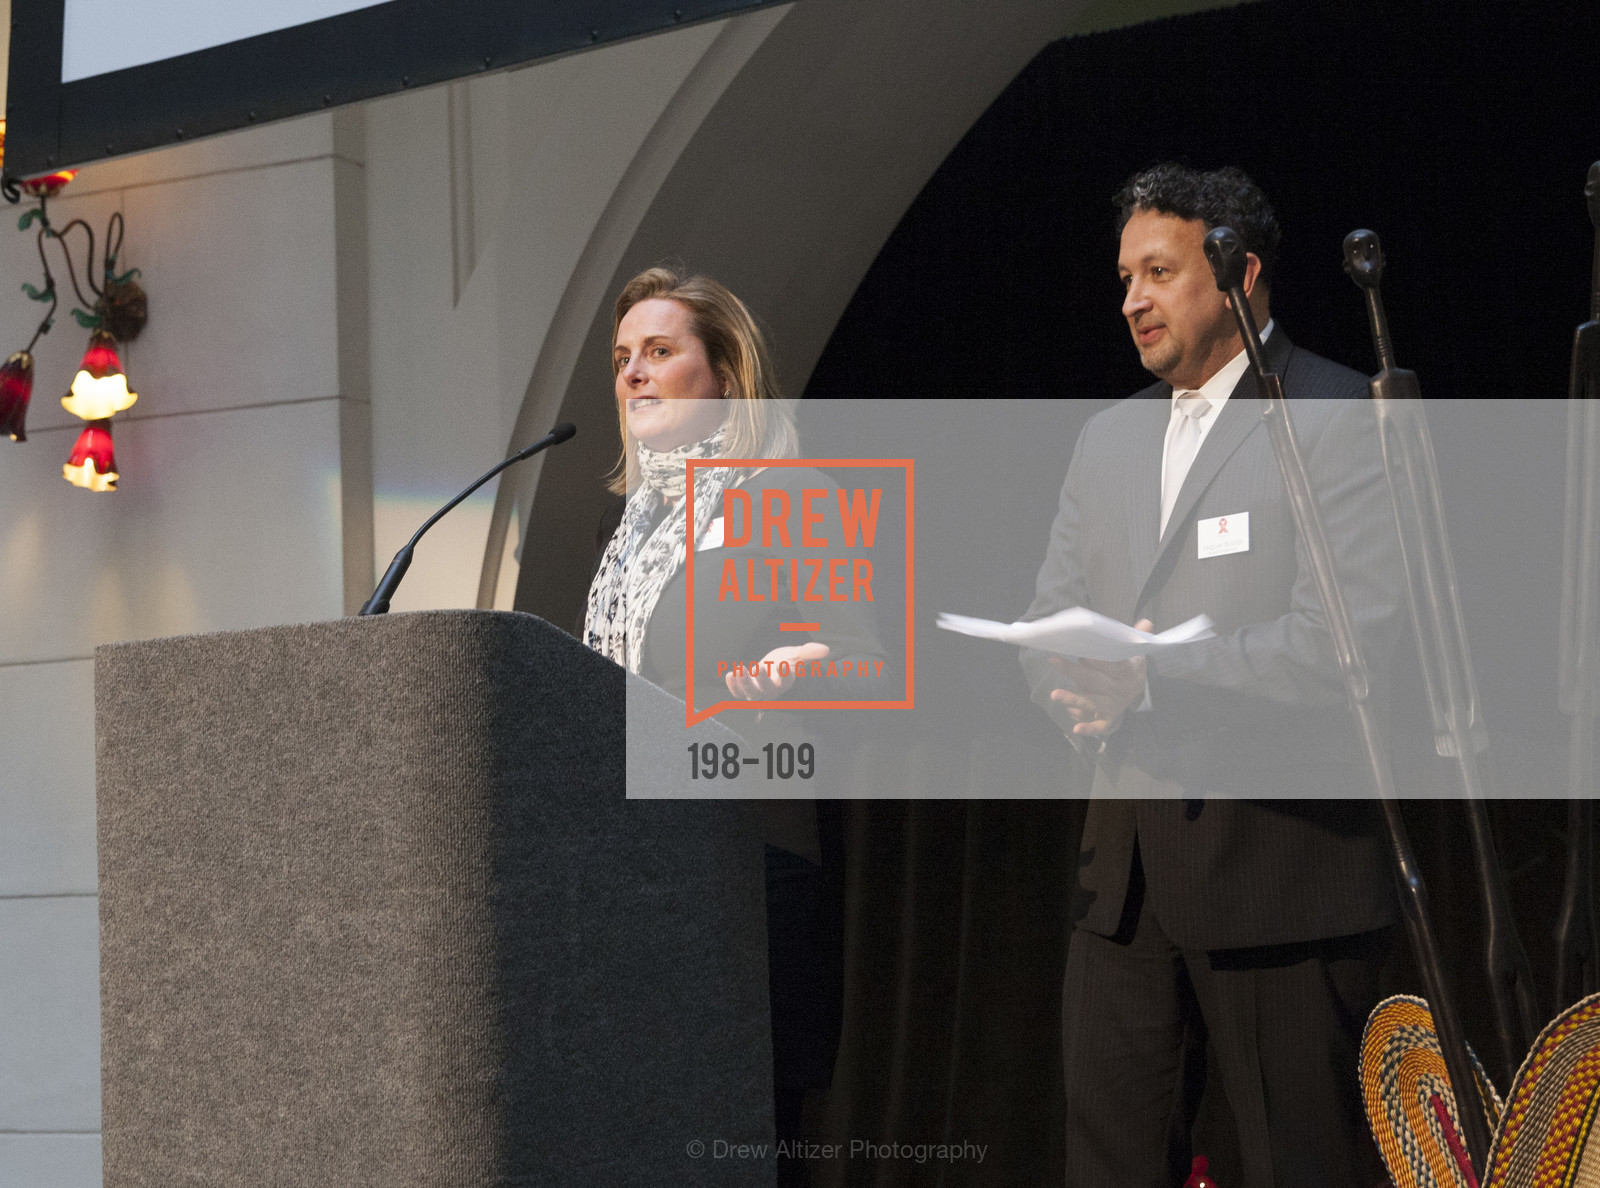 Kelly Thompson, Miguel Bustos, PANGAEA GLOBAL HEALTH Leadership Dinner at Rotunda in Oakland, The Rotunda. Oakland, May 11th, 2015,Drew Altizer, Drew Altizer Photography, full-service event agency, private events, San Francisco photographer, photographer California